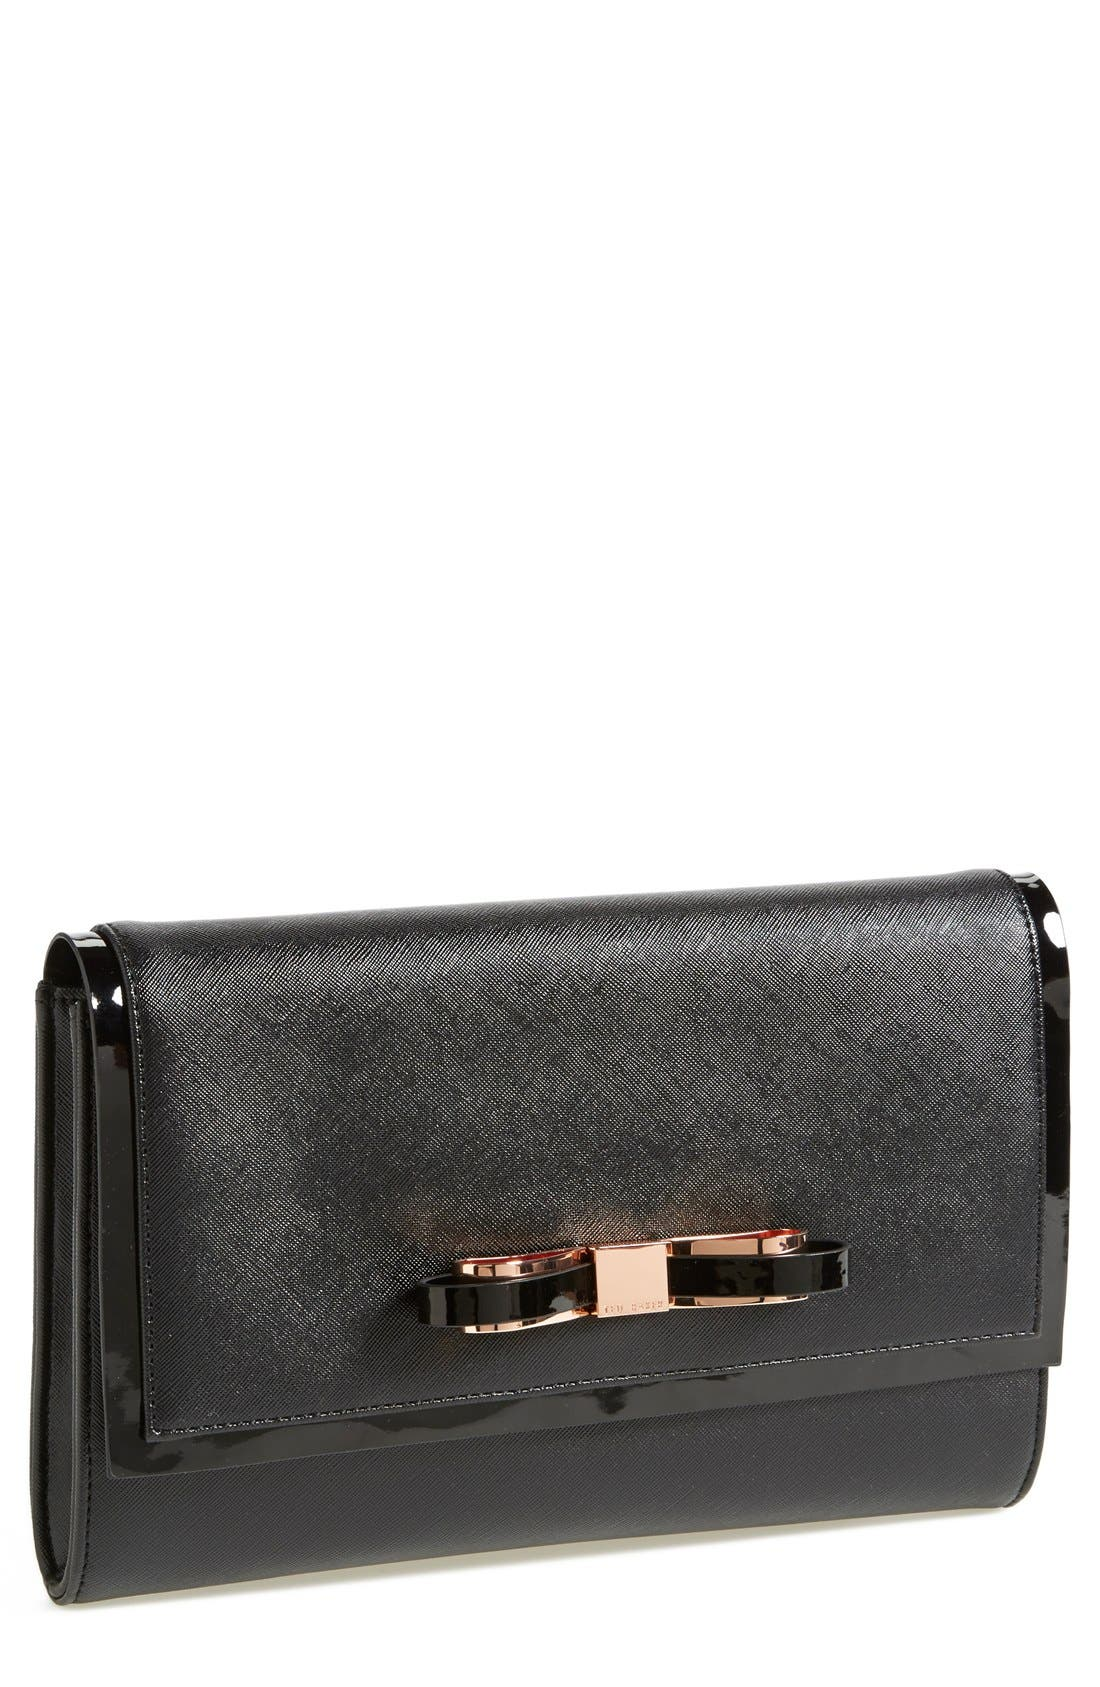 'Bow' Clutch, Main, color, 001